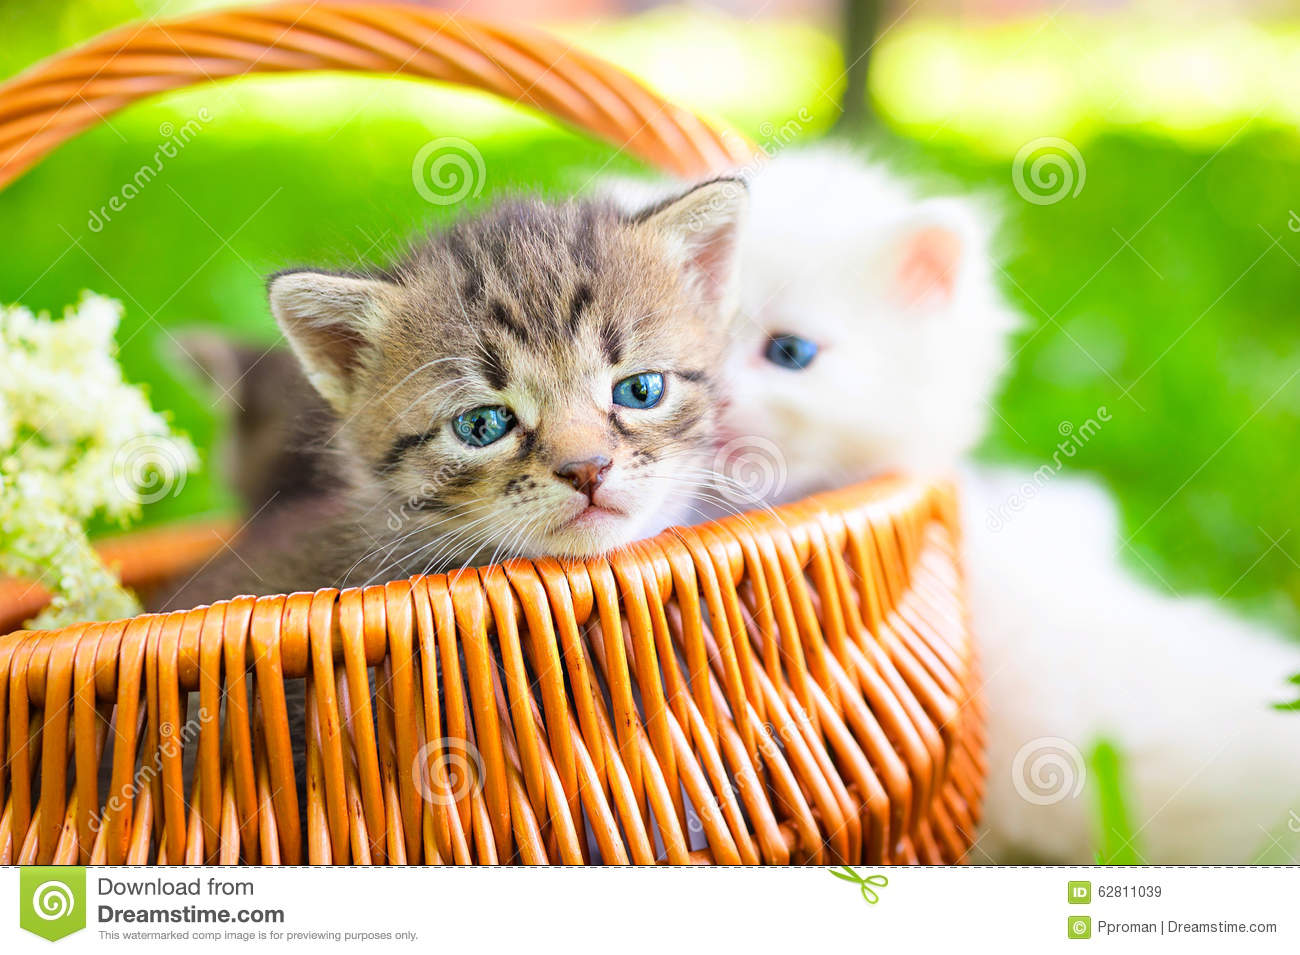 Small Cat On Grass Stock Photo - Image: 62811039